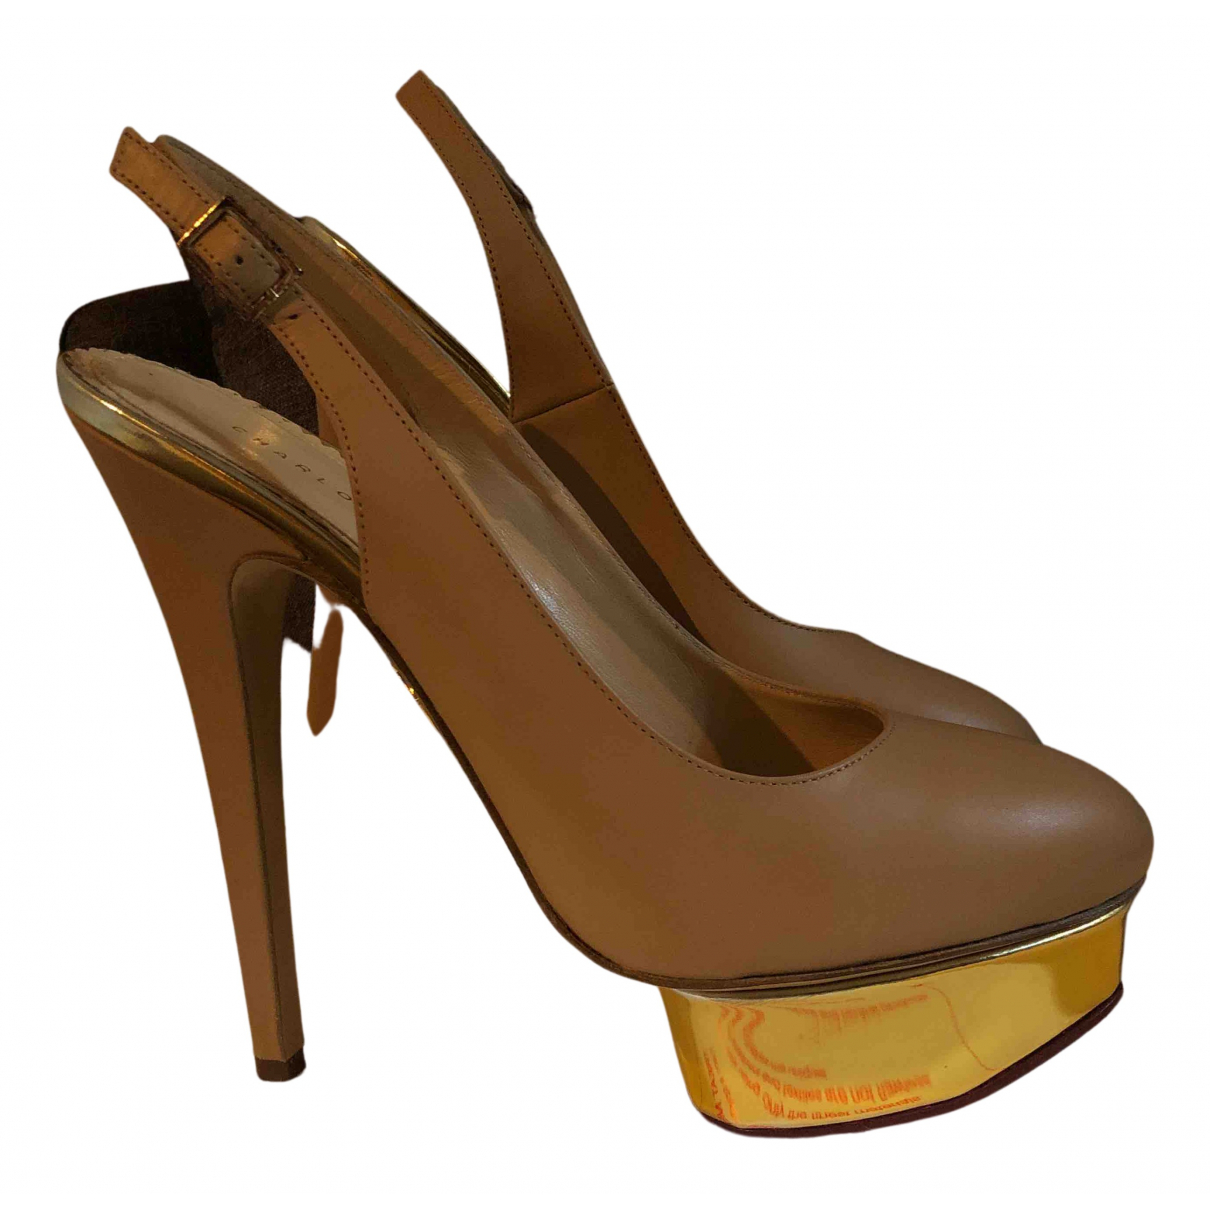 Charlotte Olympia Dolly Beige Leather Heels for Women 39 EU